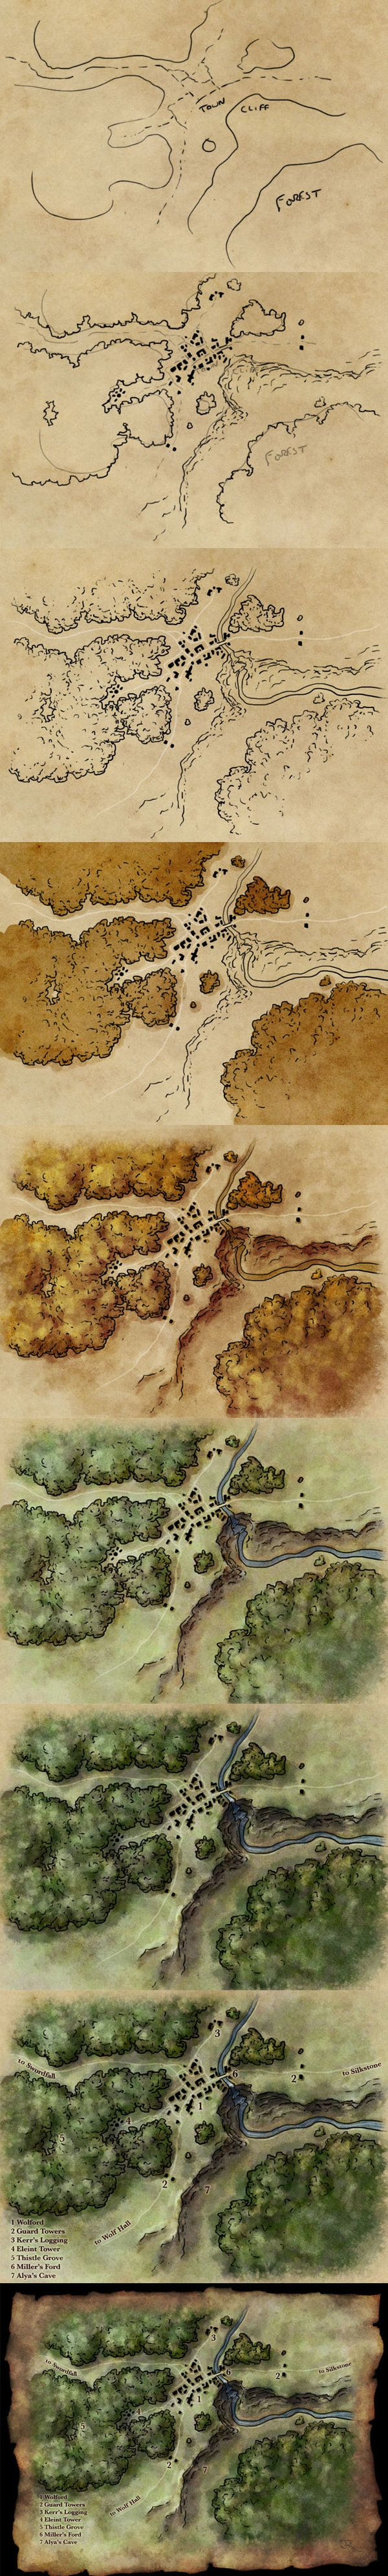 How to draw a map by torstan cartography resource tool how to tutorial instructions | Create your own roleplaying game material w/ RPG Bard: www.rpgbard.com | Writing inspiration for Dungeons and Dragons DND D&D Pathfinder PFRPG Warhammer 40k Star Wars Shadowrun Call of Cthulhu Lord of the Rings LoTR + d20 fantasy science fiction scifi horror design | Not our art: click artwork for source